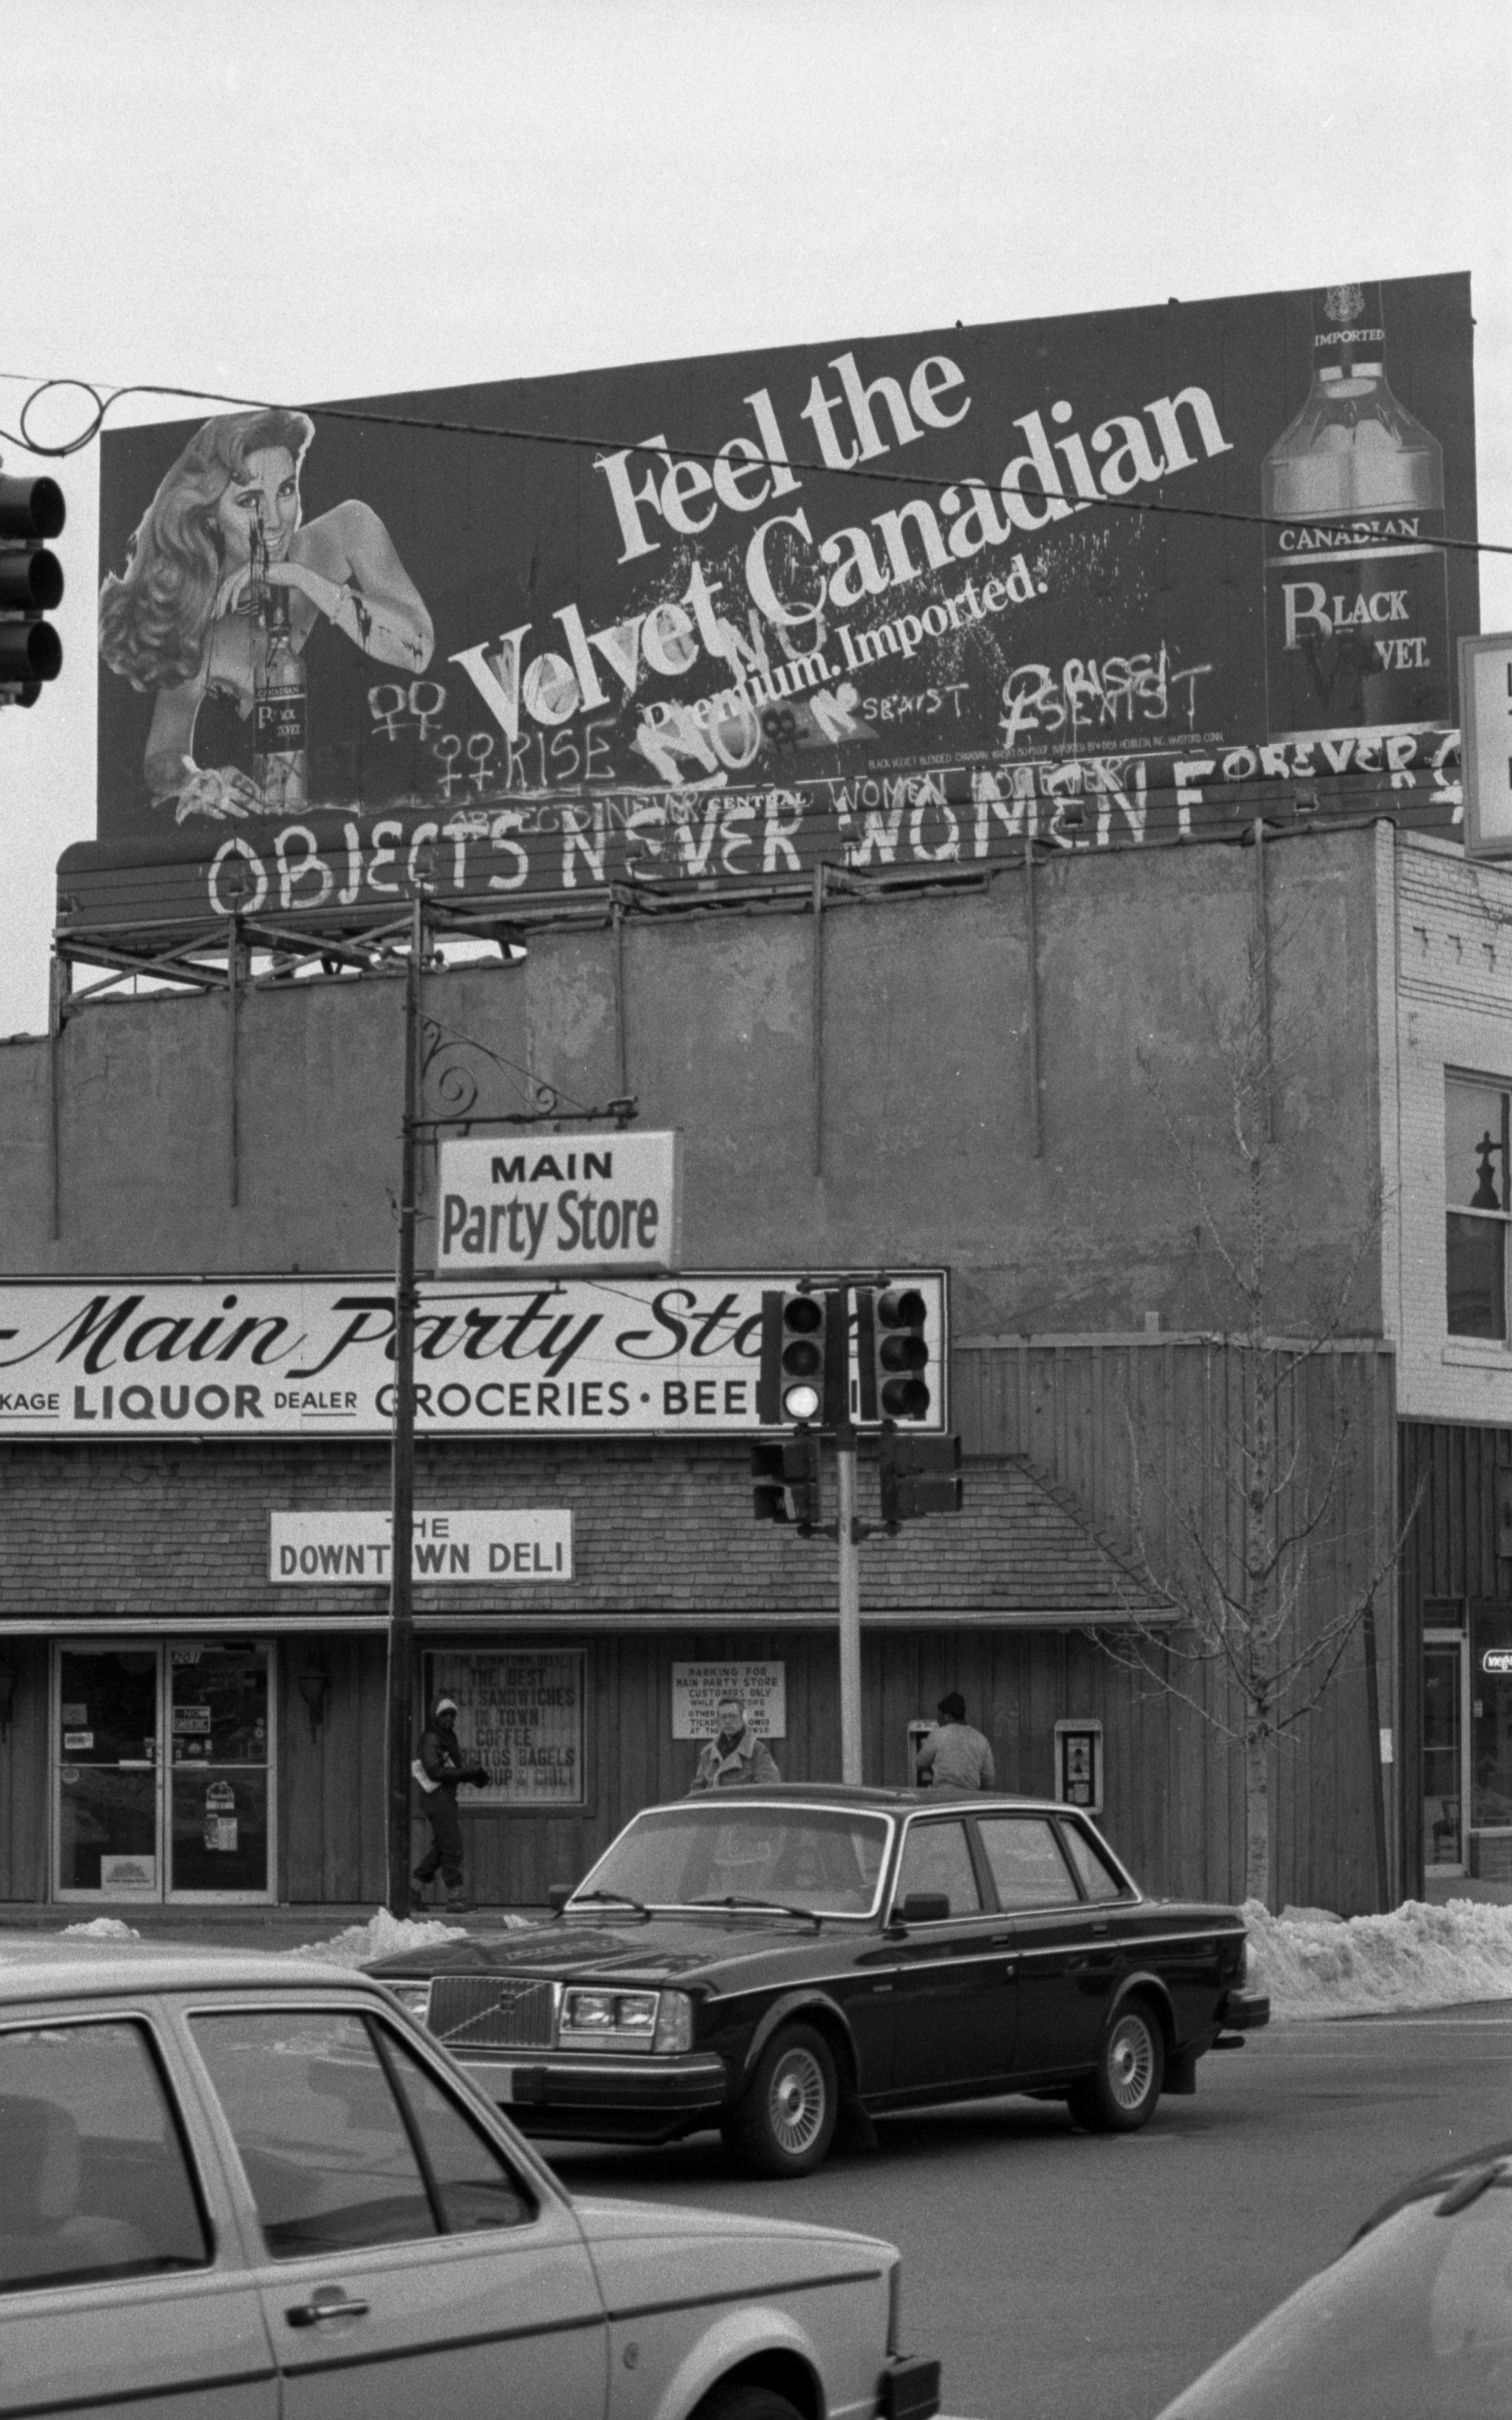 Defaced Billboard Atop Main Party Store, March 1985 image